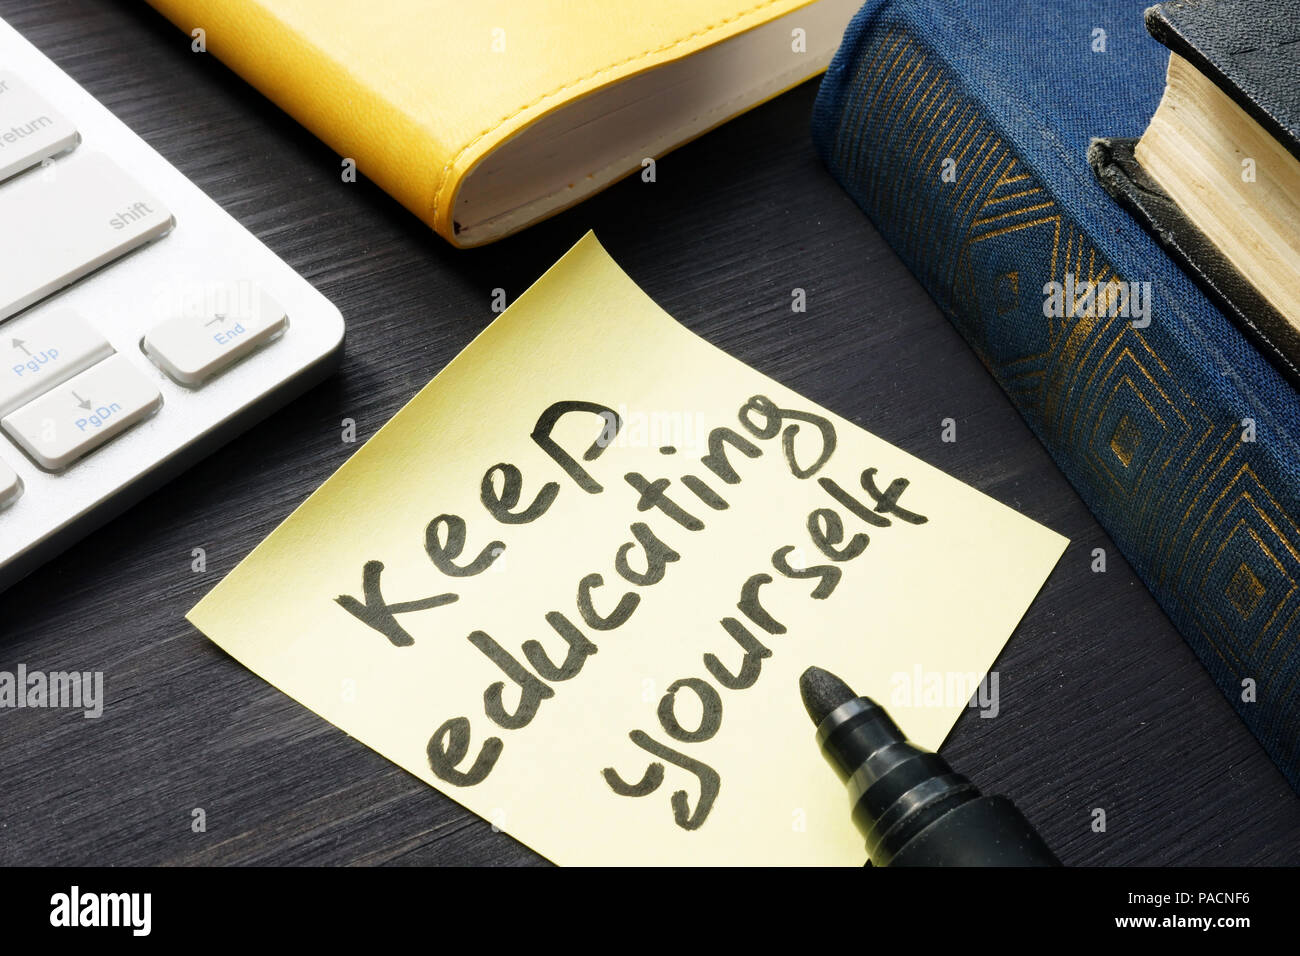 Keep educating yourself. Book and keyboard. Lifelong learning. - Stock Image